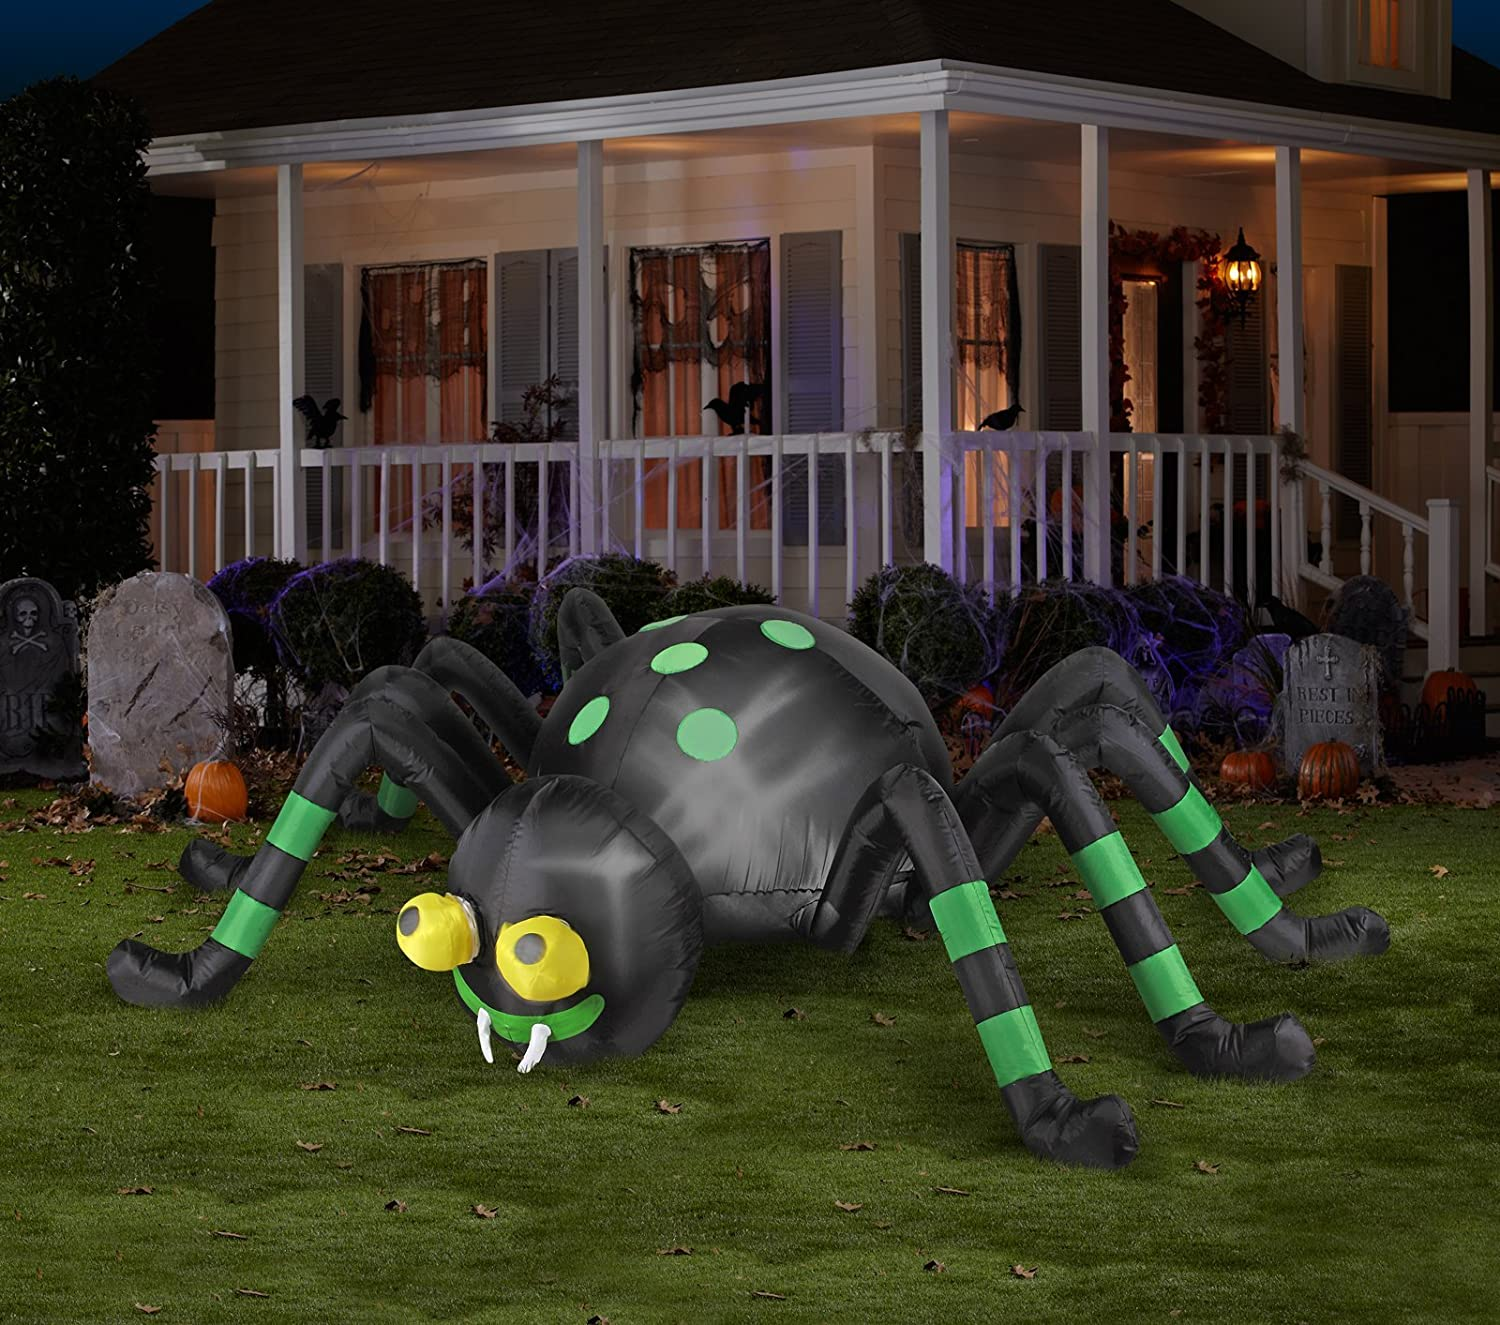 amazoncom halloween inflatable 8 animated spider with spinning eyes by gemmy patio lawn garden - Halloween Inflatable Yard Decorations